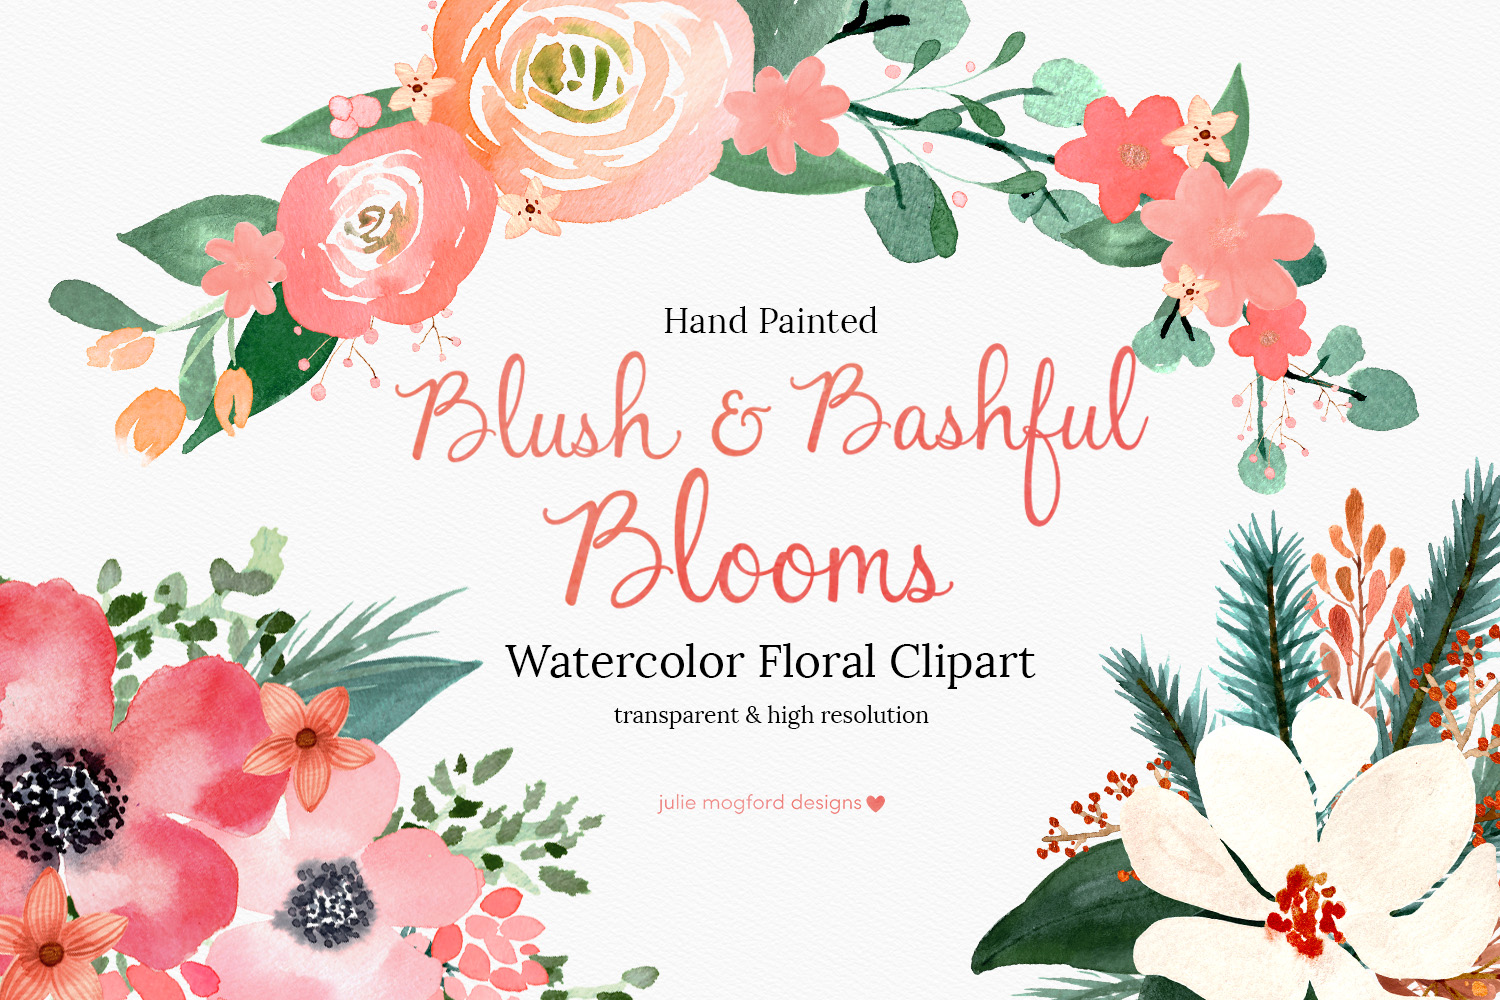 Watercolor floral cliparts picture royalty free library Blush & Bashful Blooms - Watercolor Floral Clipart picture royalty free library